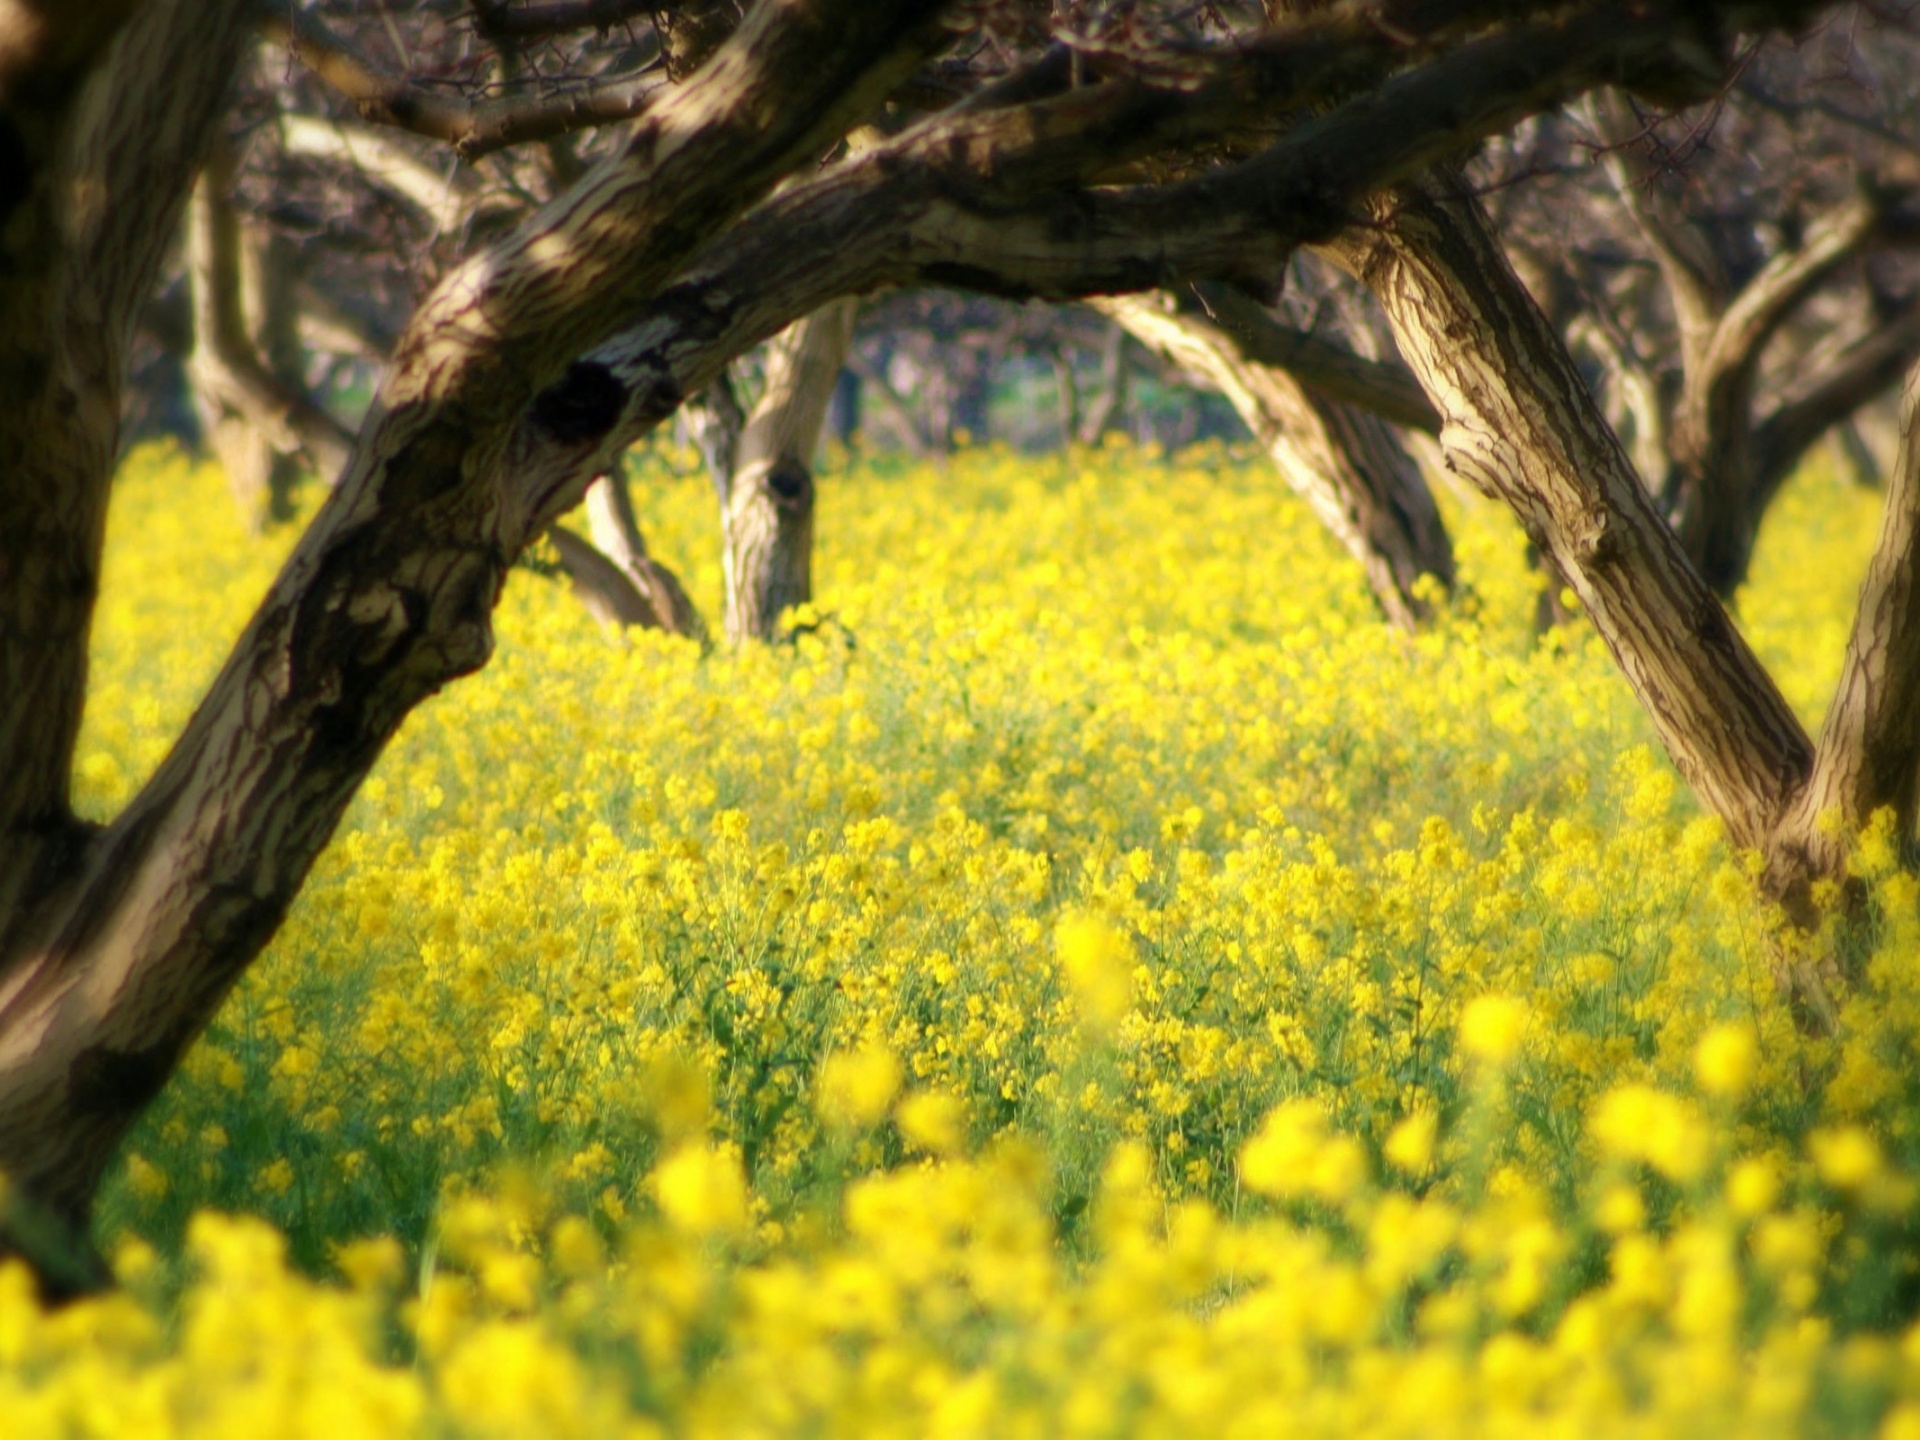 Nature Landscape Image Yellow Little Flowers The Brown